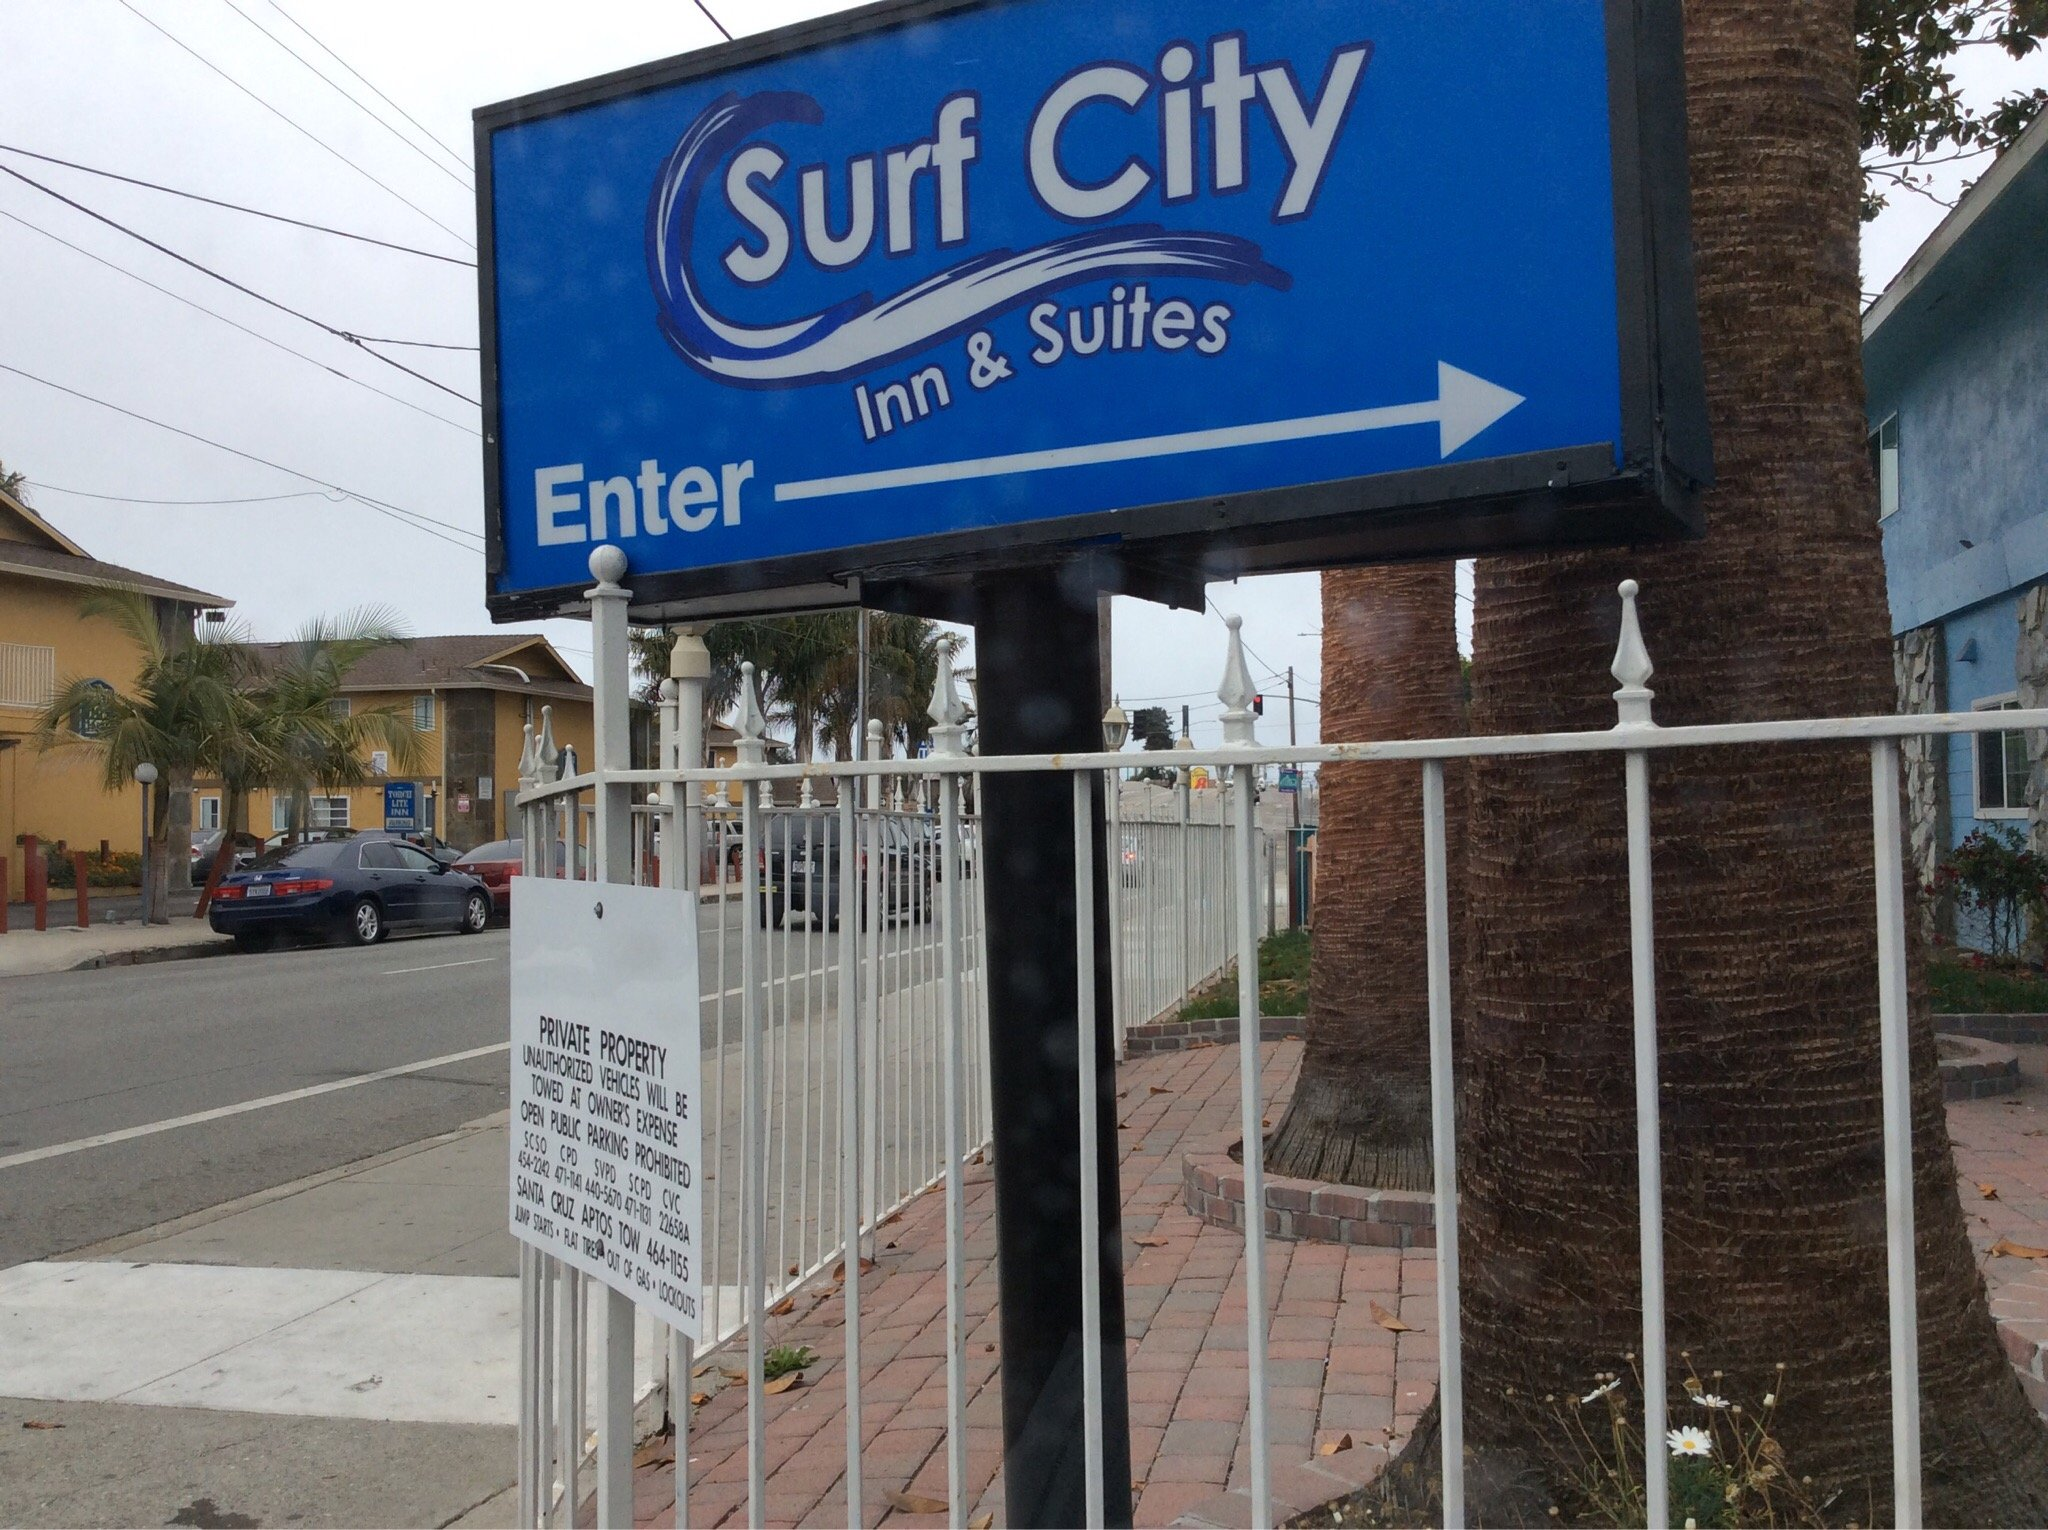 Surf City Inn & Suites